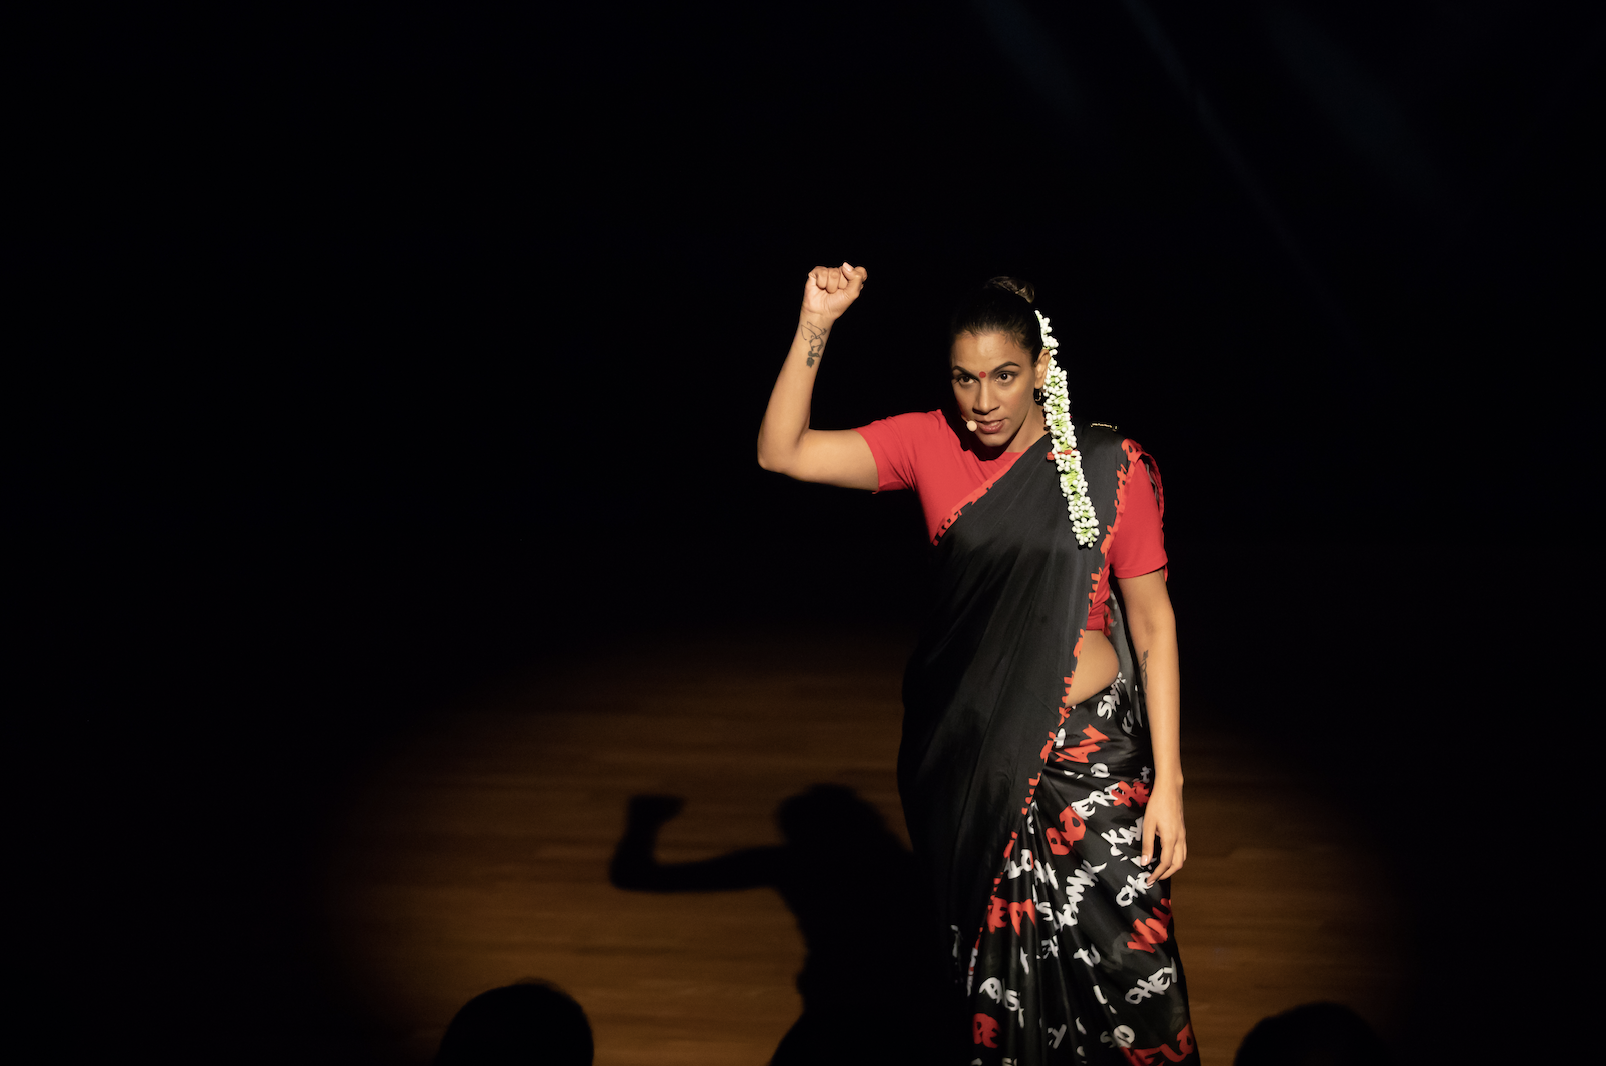 Sharul Channa's Disco Sheela and Other Indian Superwomen was one of the highlights of Kalaa Utsavam 2018. Photo courtesy: Esplanade Theatres on The Bay